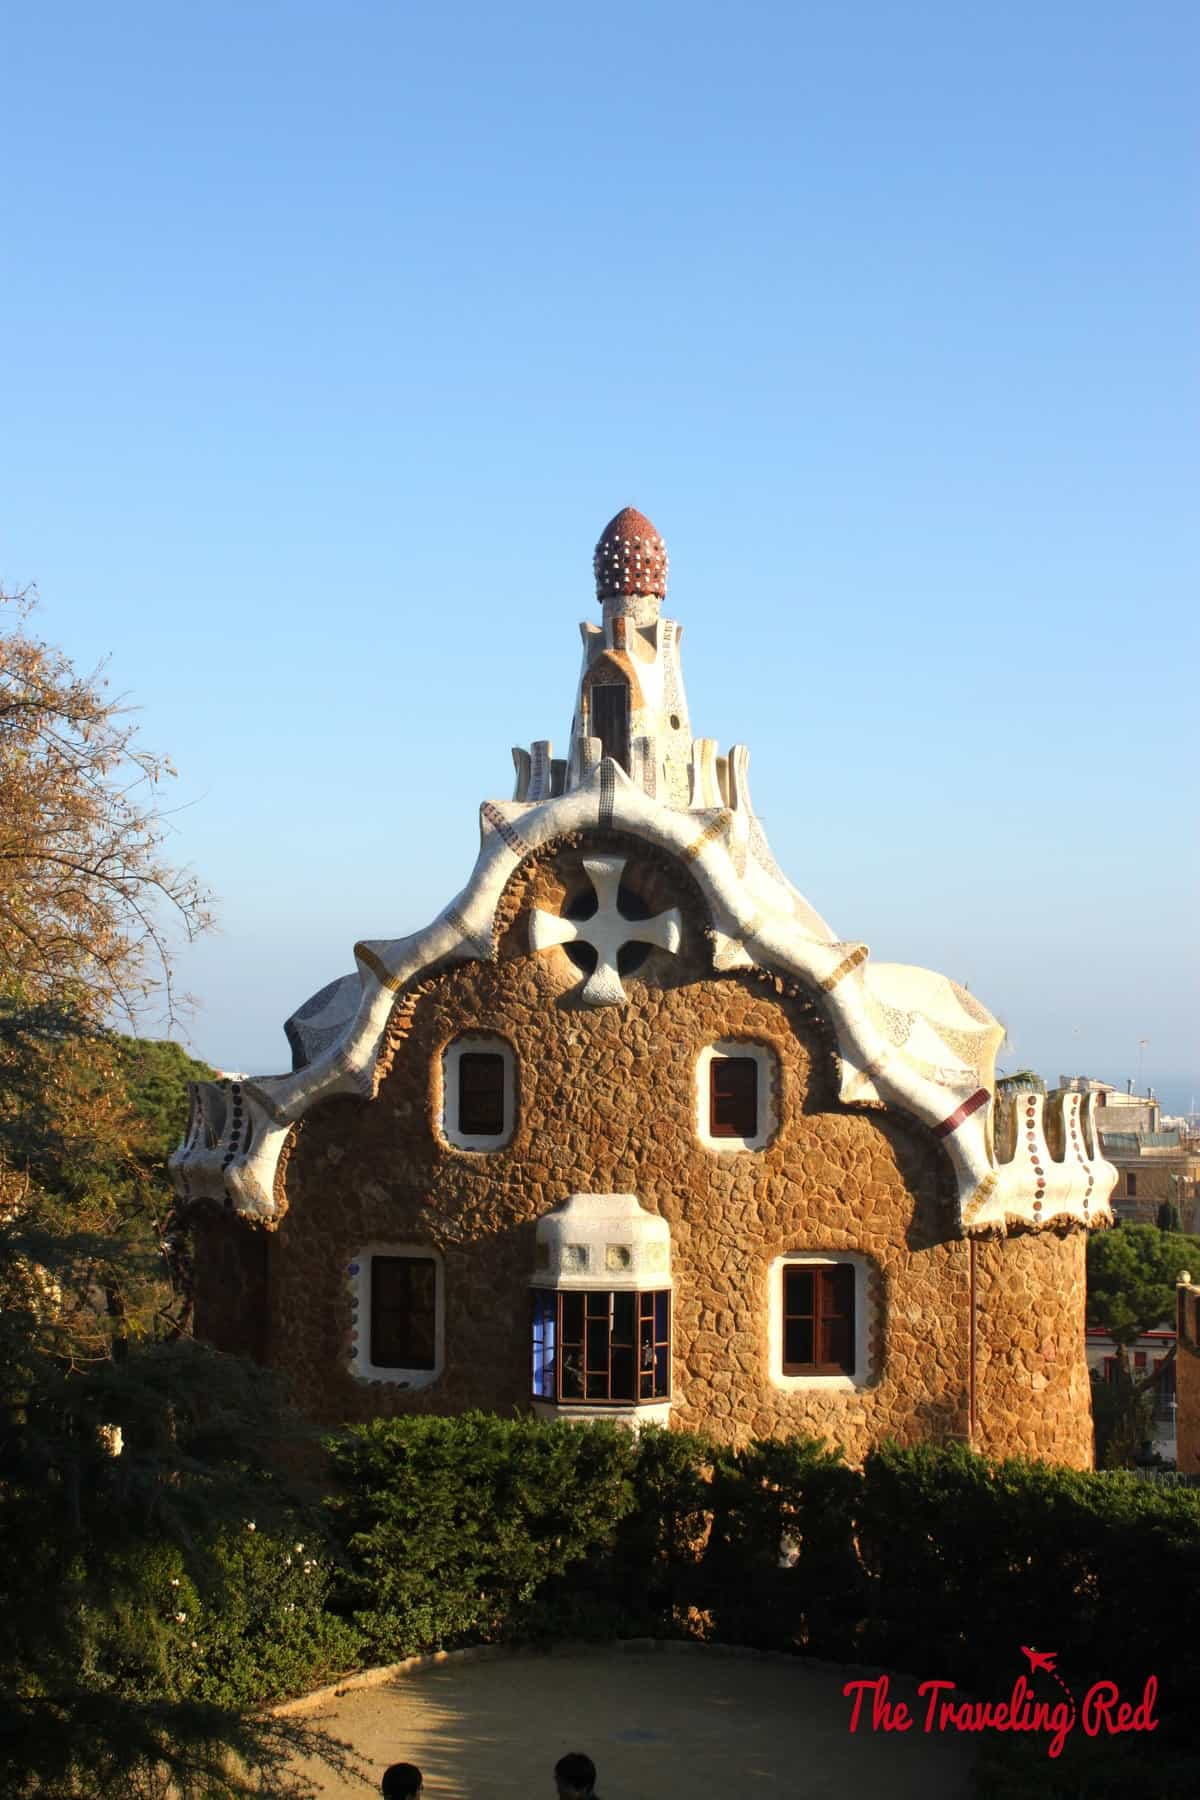 Barcelona, Spain is filled with works by Antoni Guadí. My favorites were the gingerbread house inspired buildings at the entrance of Parc Güell.